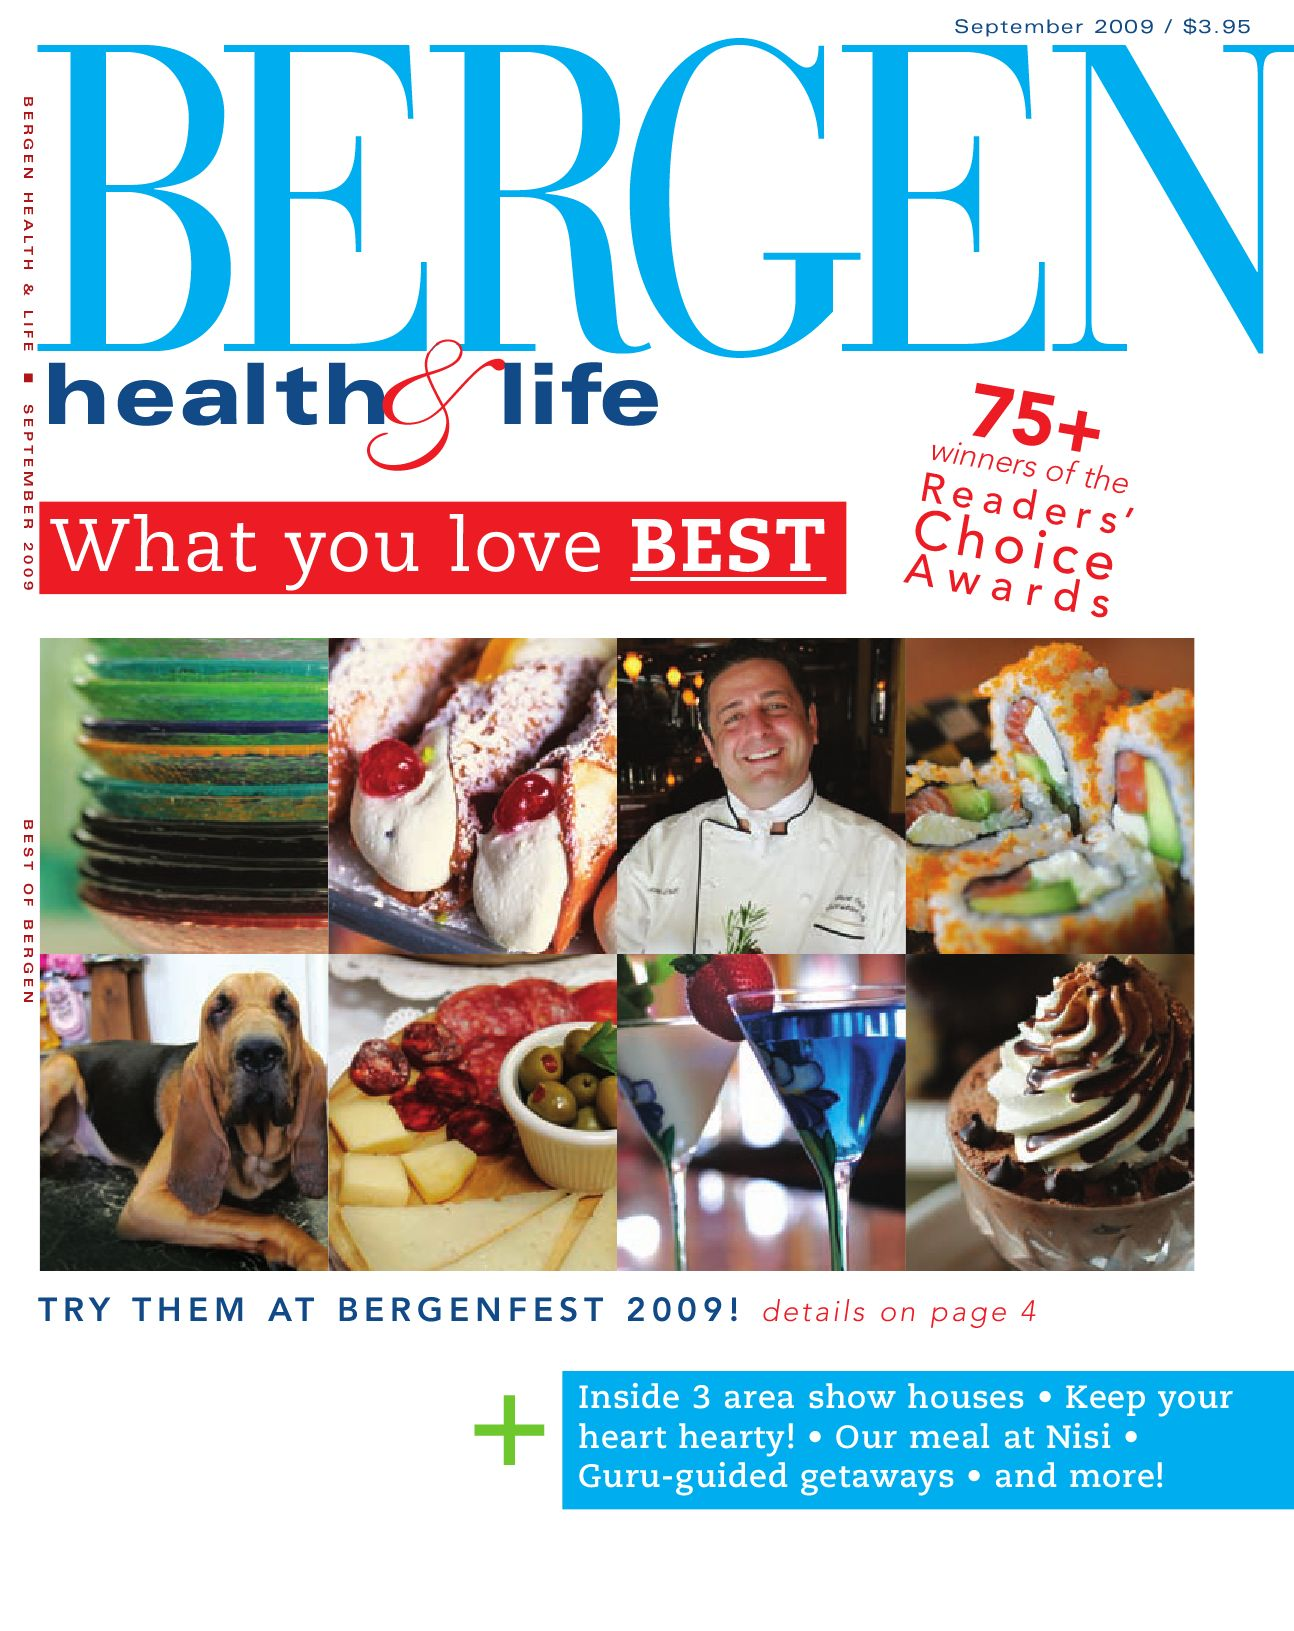 Bergen Health & Life September 2009 issue by Wainscot Media - issuu